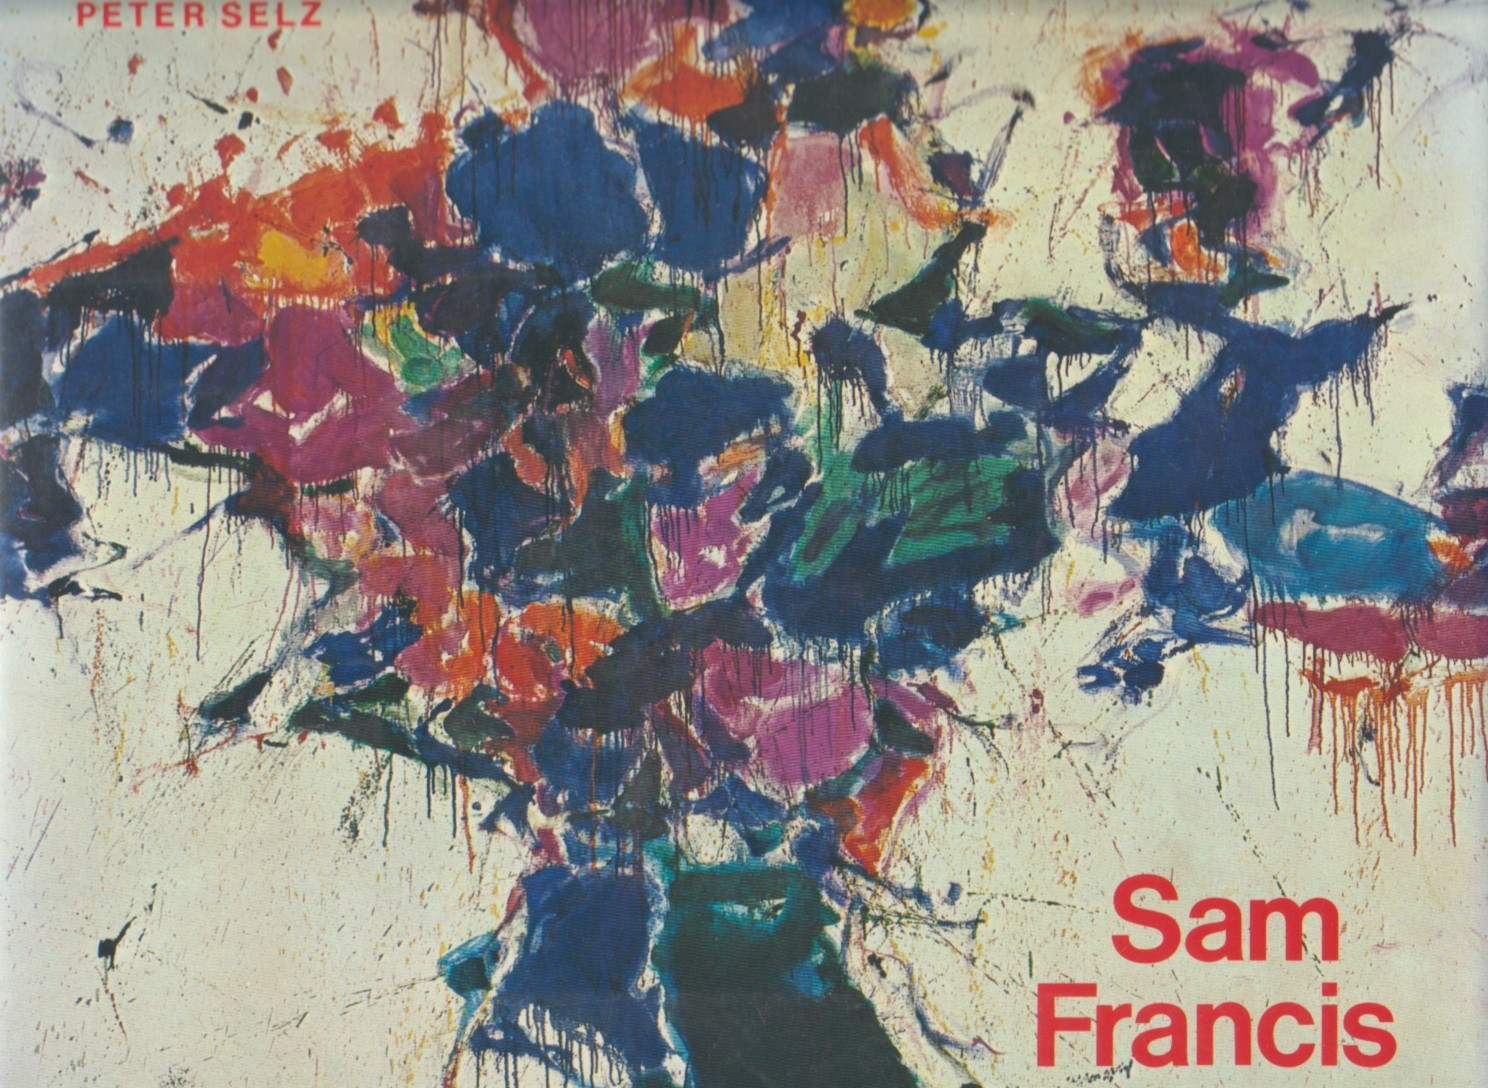 (FRANCIS, SAM). SELZ, PETER & SUSAN EINSTEIN - SAM FRANCIS - SIGNED BY THE ARTIST